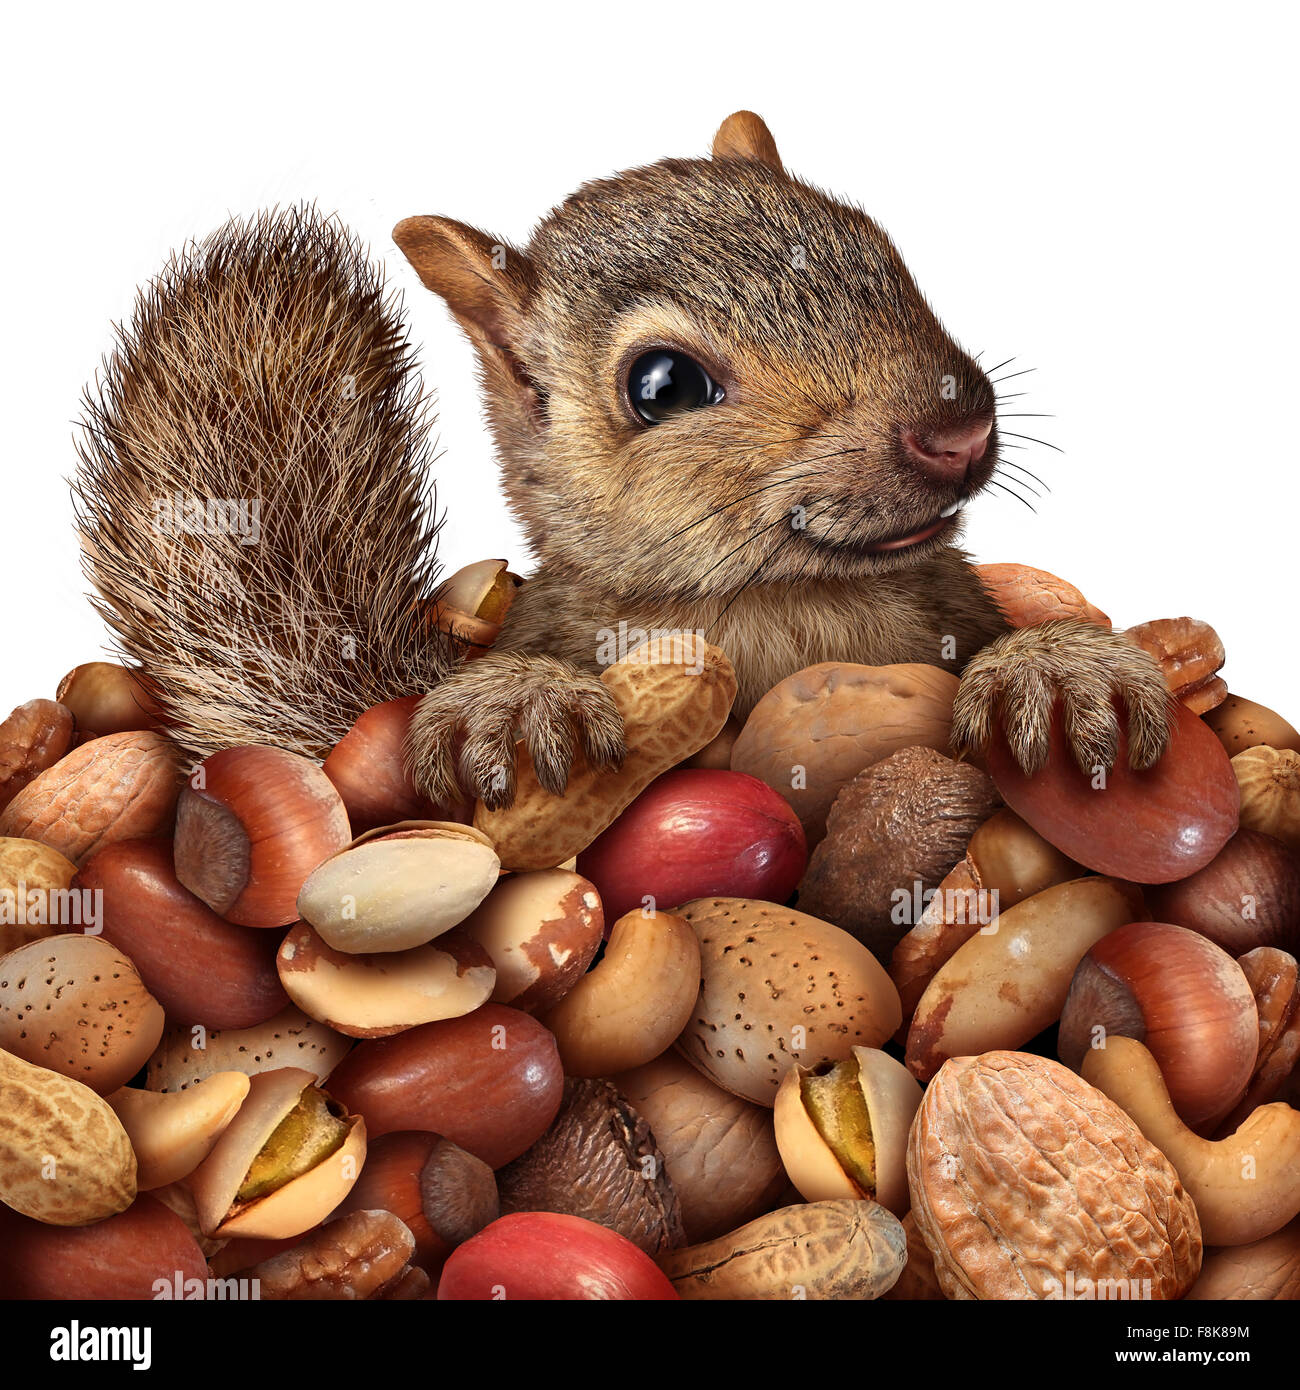 Prosperity and savings business concept as a squirrel holding a group of peanuts and assorted nuts as cute furry - Stock Image